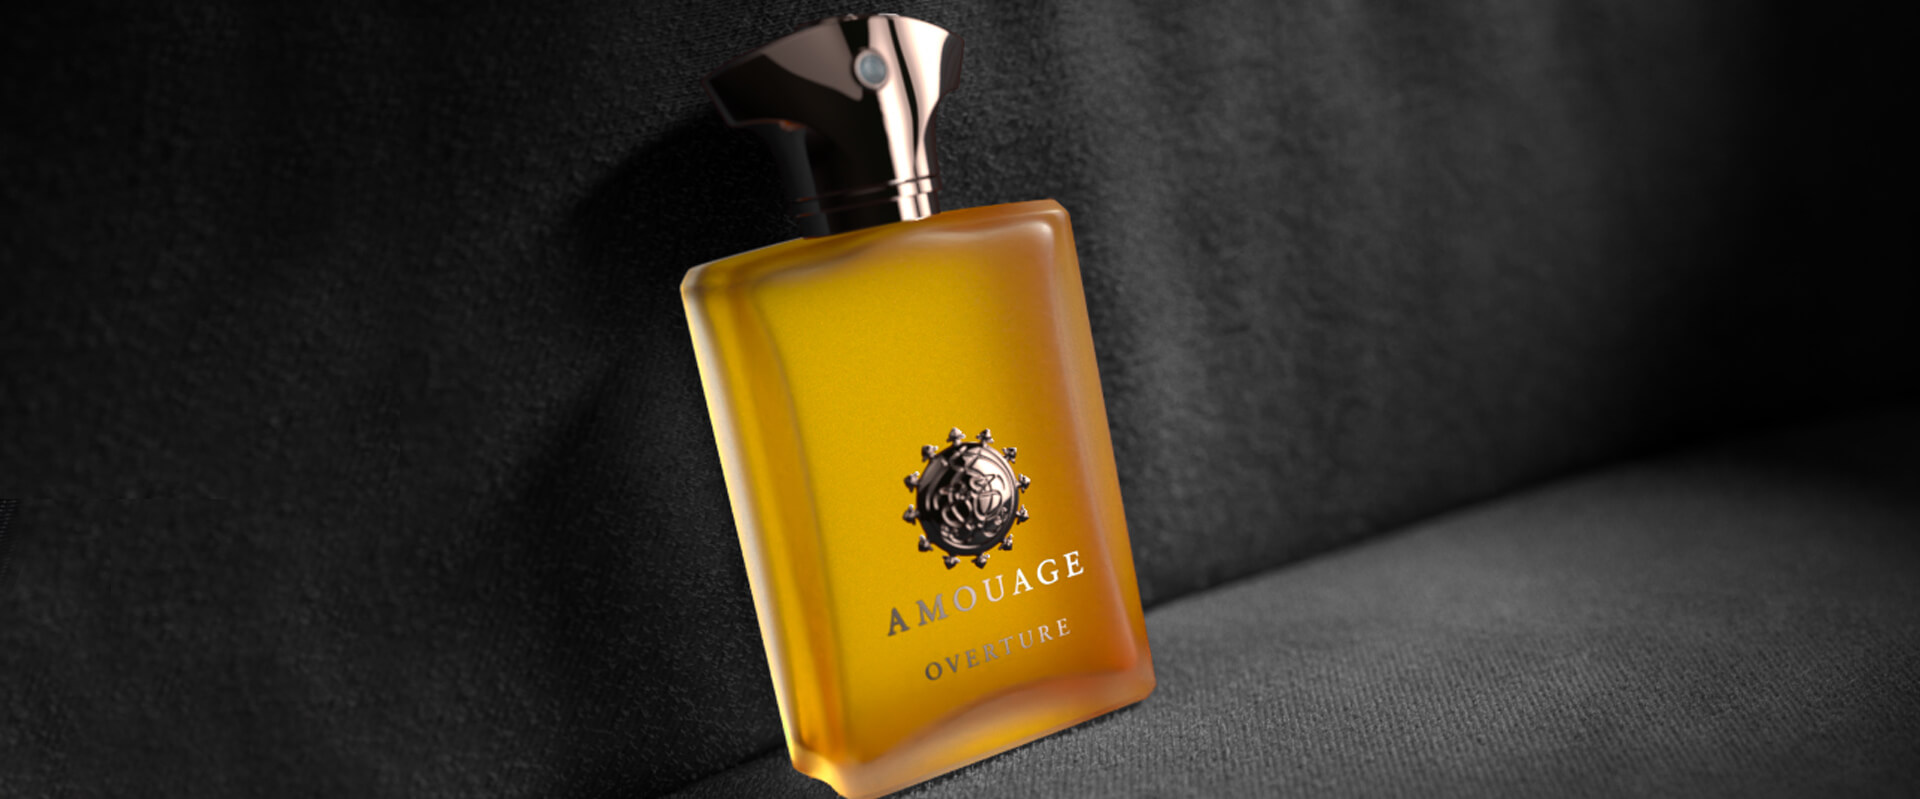 Fragrance Description